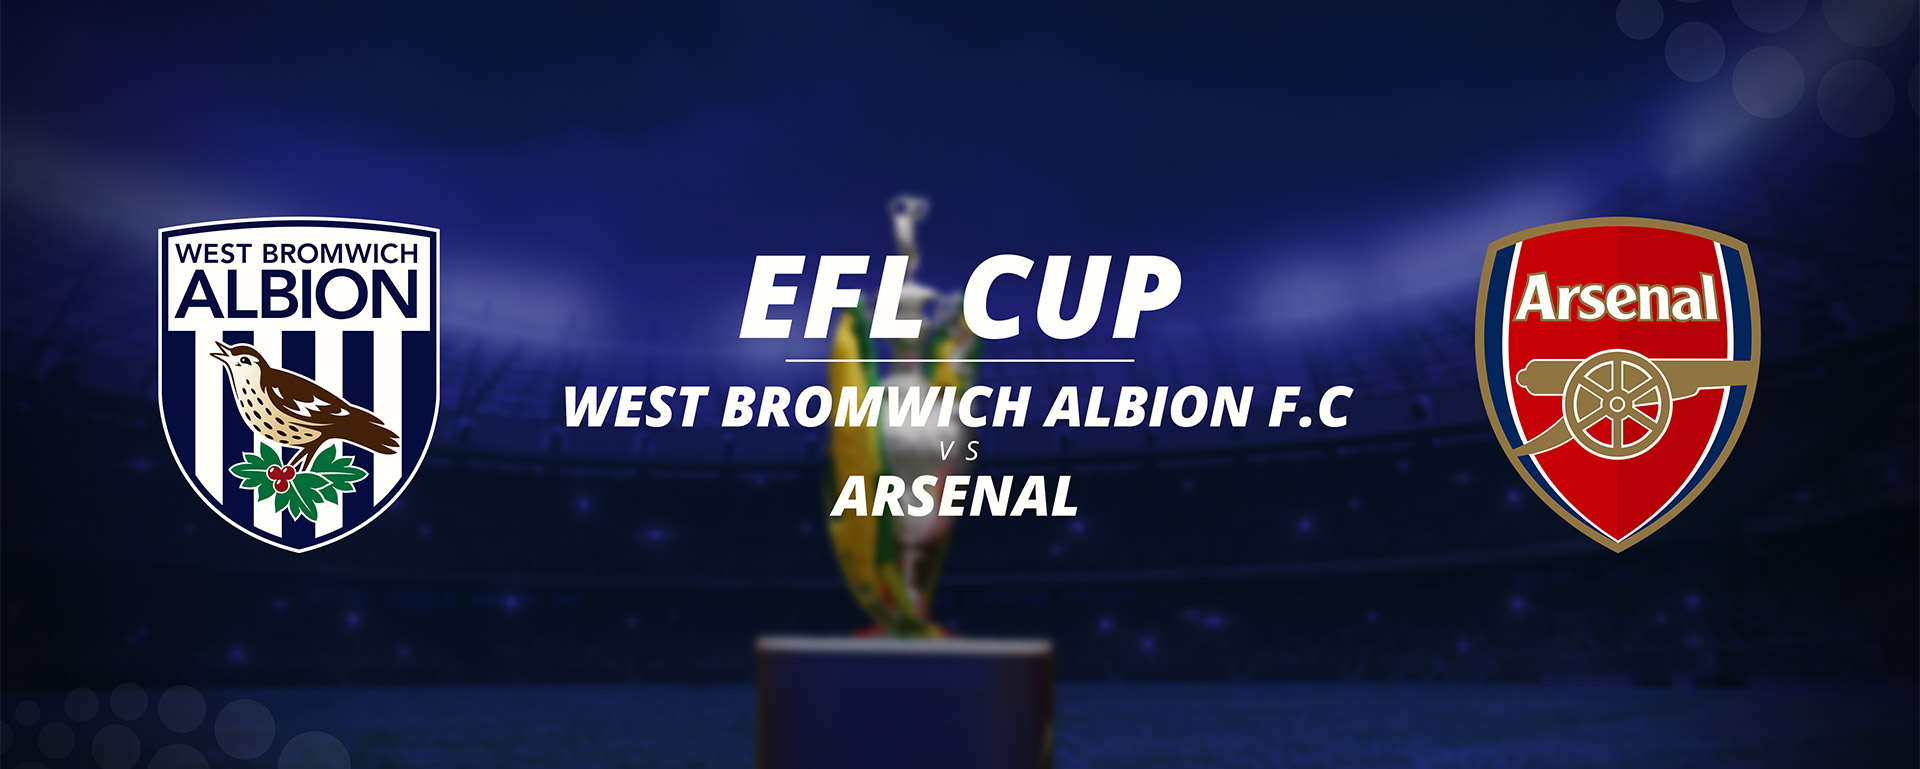 WEST BROMWICH ALBION VS ARSENAL: BETTING PREVIEW